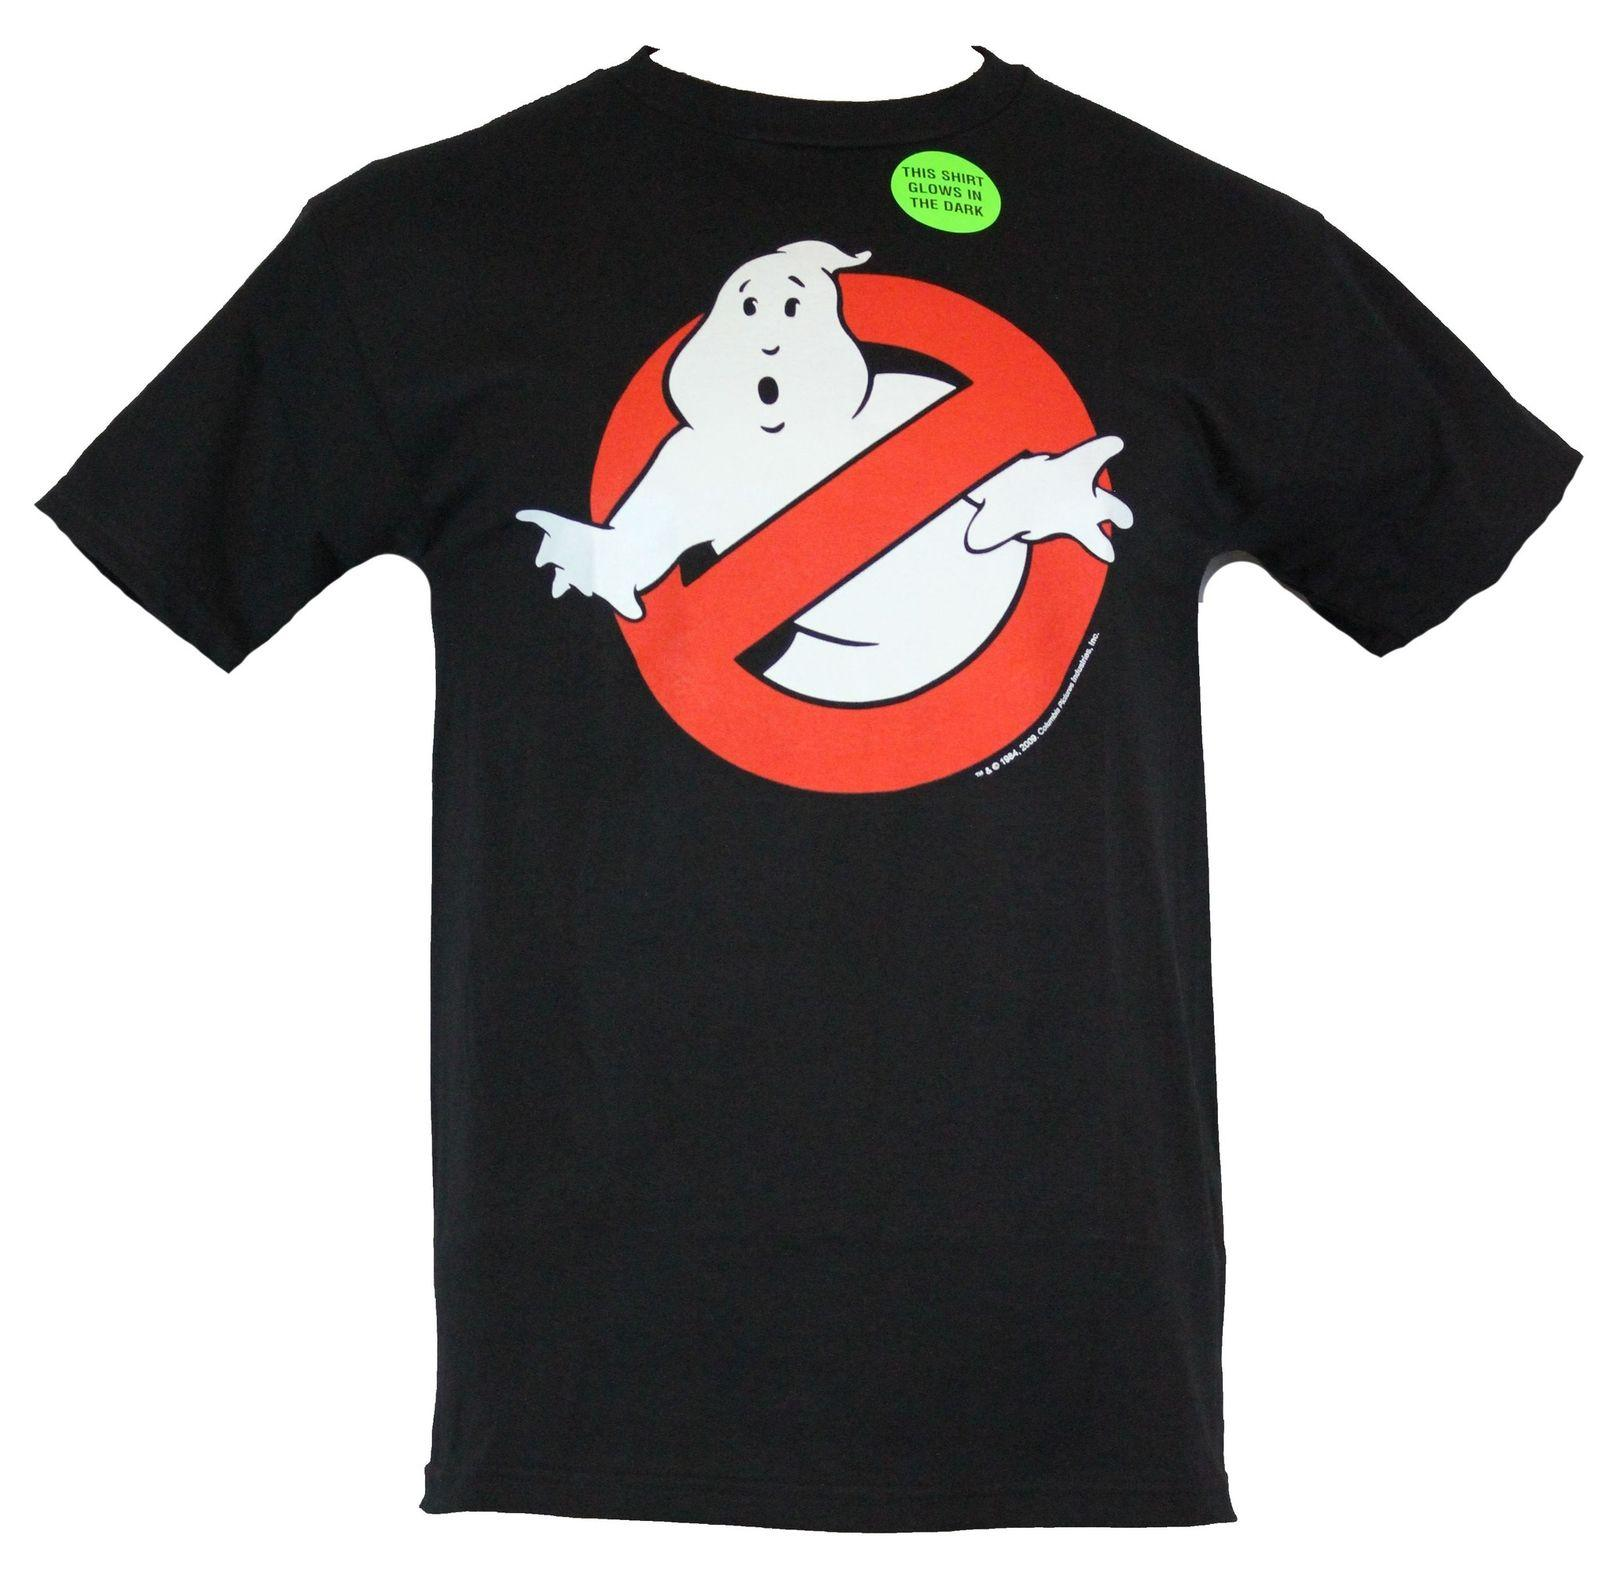 Ghostbusters Mens T Shirt Classic No Ghost Logo Glowing Image Shirts  Designer Designer White T Shirts From Cozyroam, &Price;.